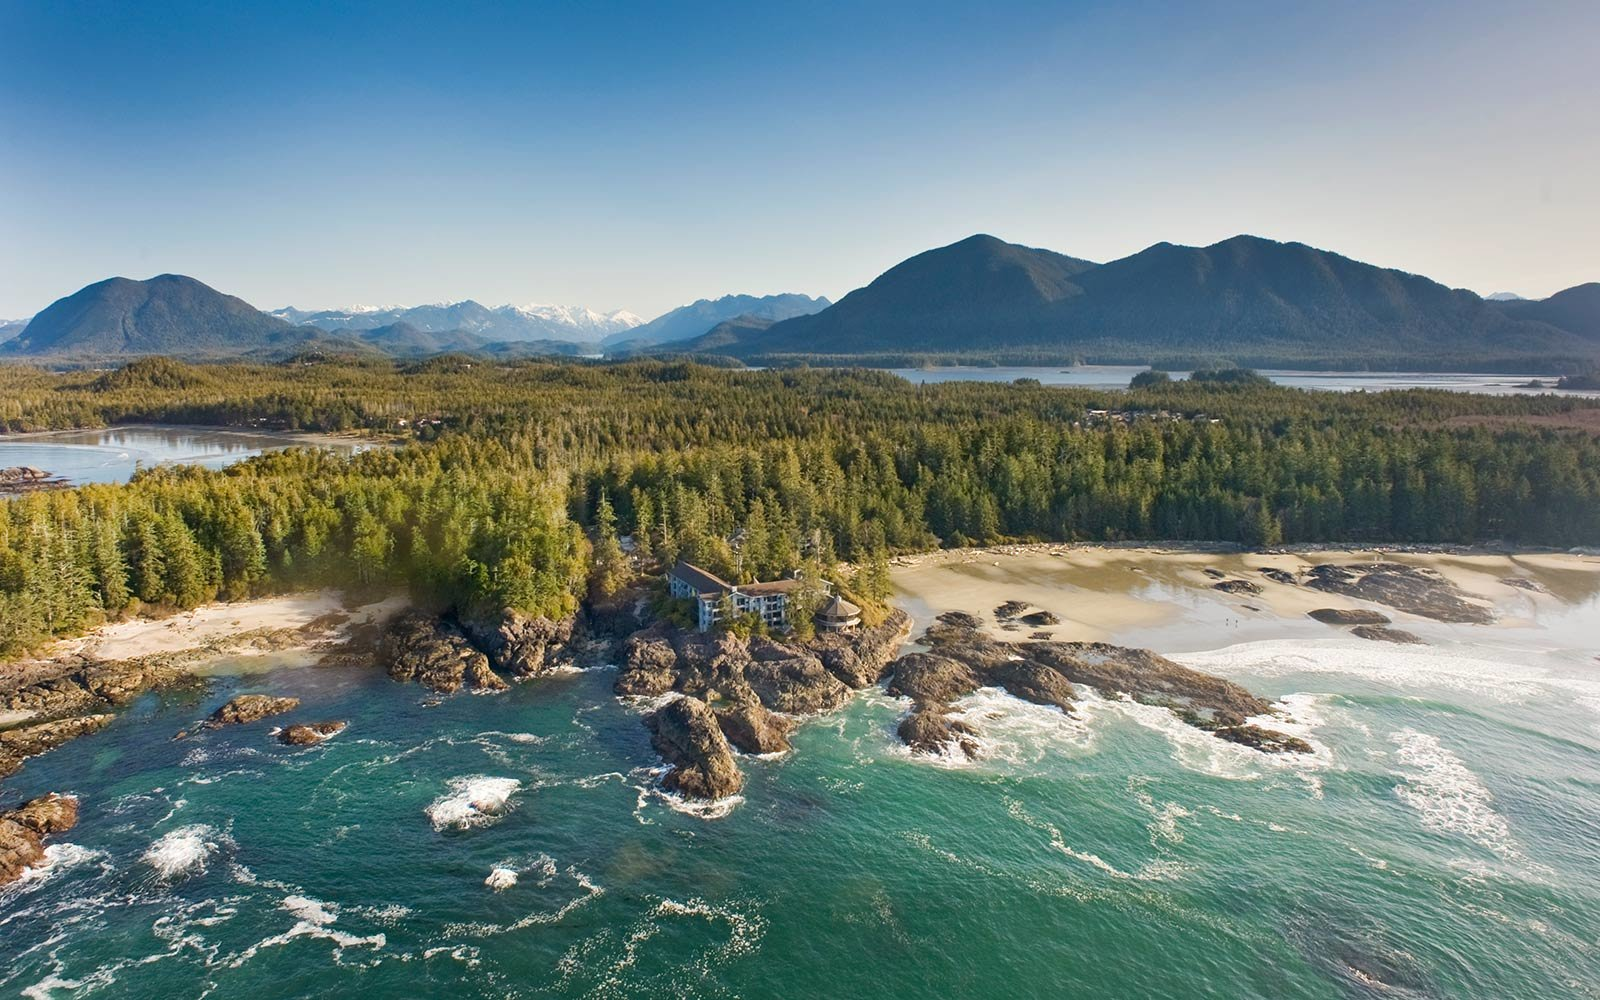 2. Wickaninnish Inn, Tofino, British Columbia